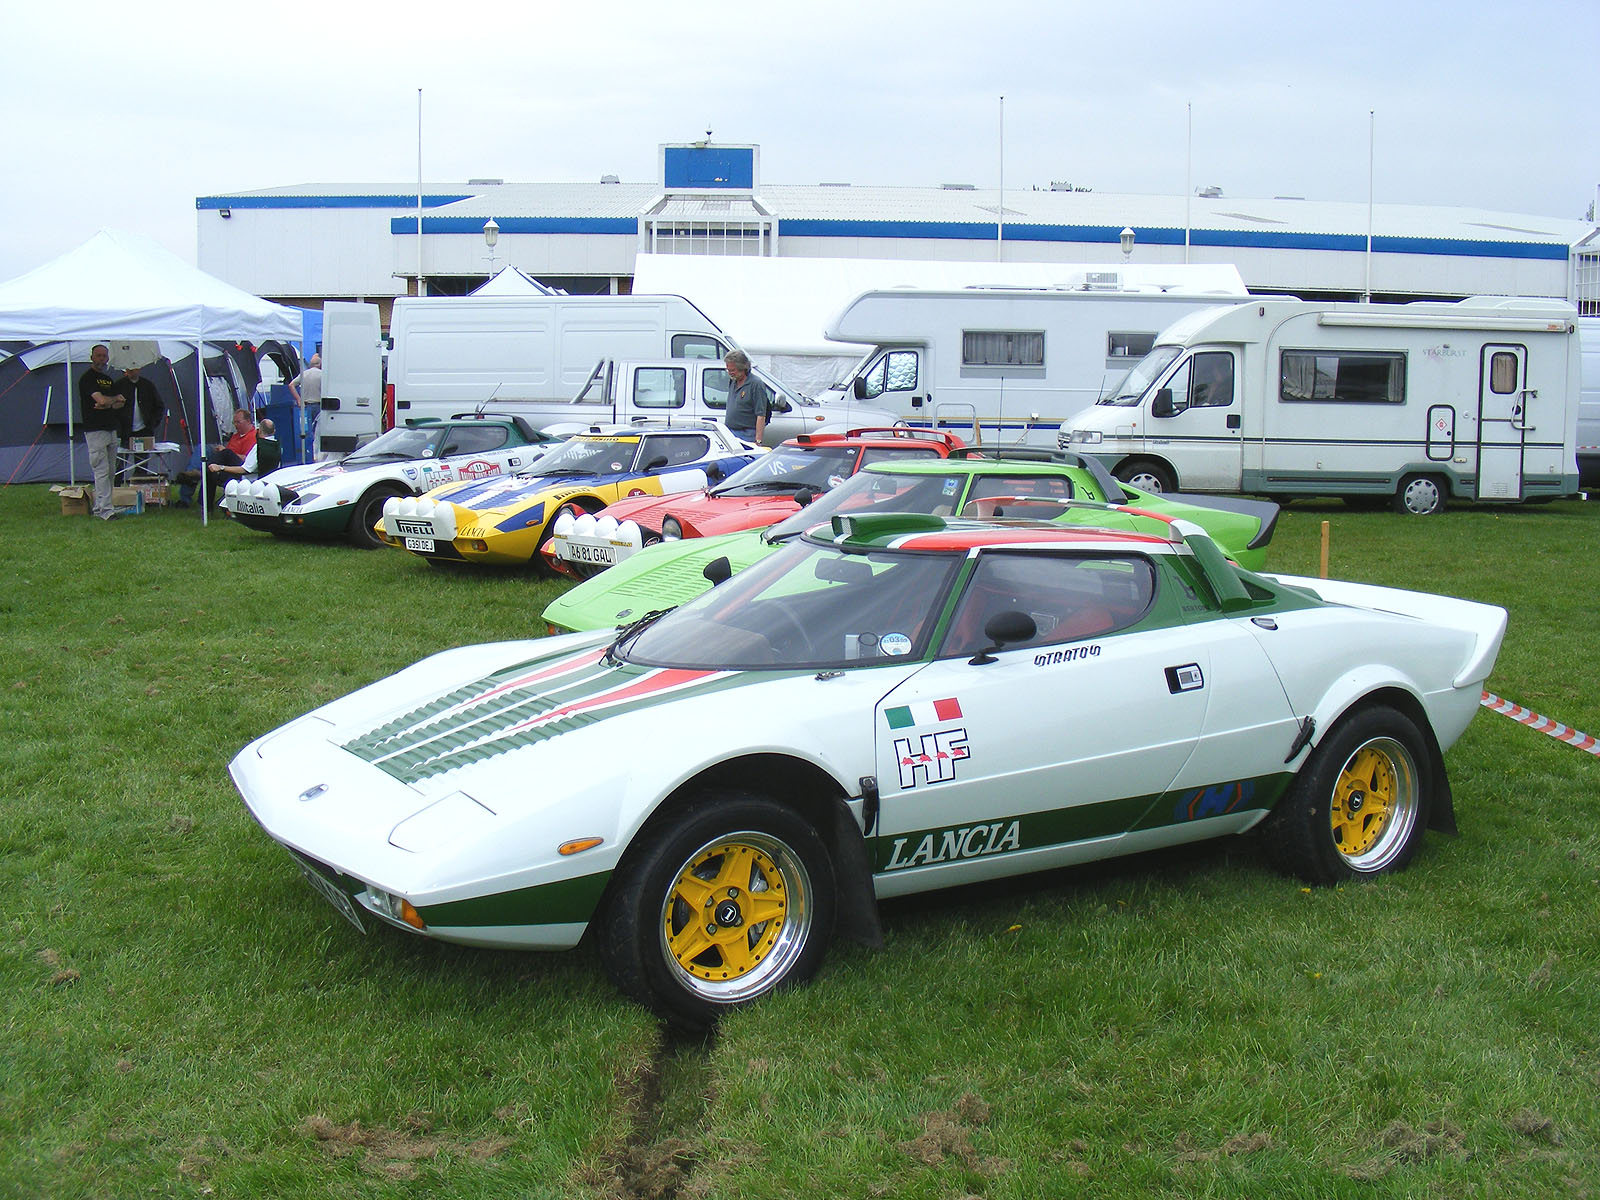 Lancia Stratos Kit Car For Sale >> Lancia Stratos Kit Car For Sale Pictures